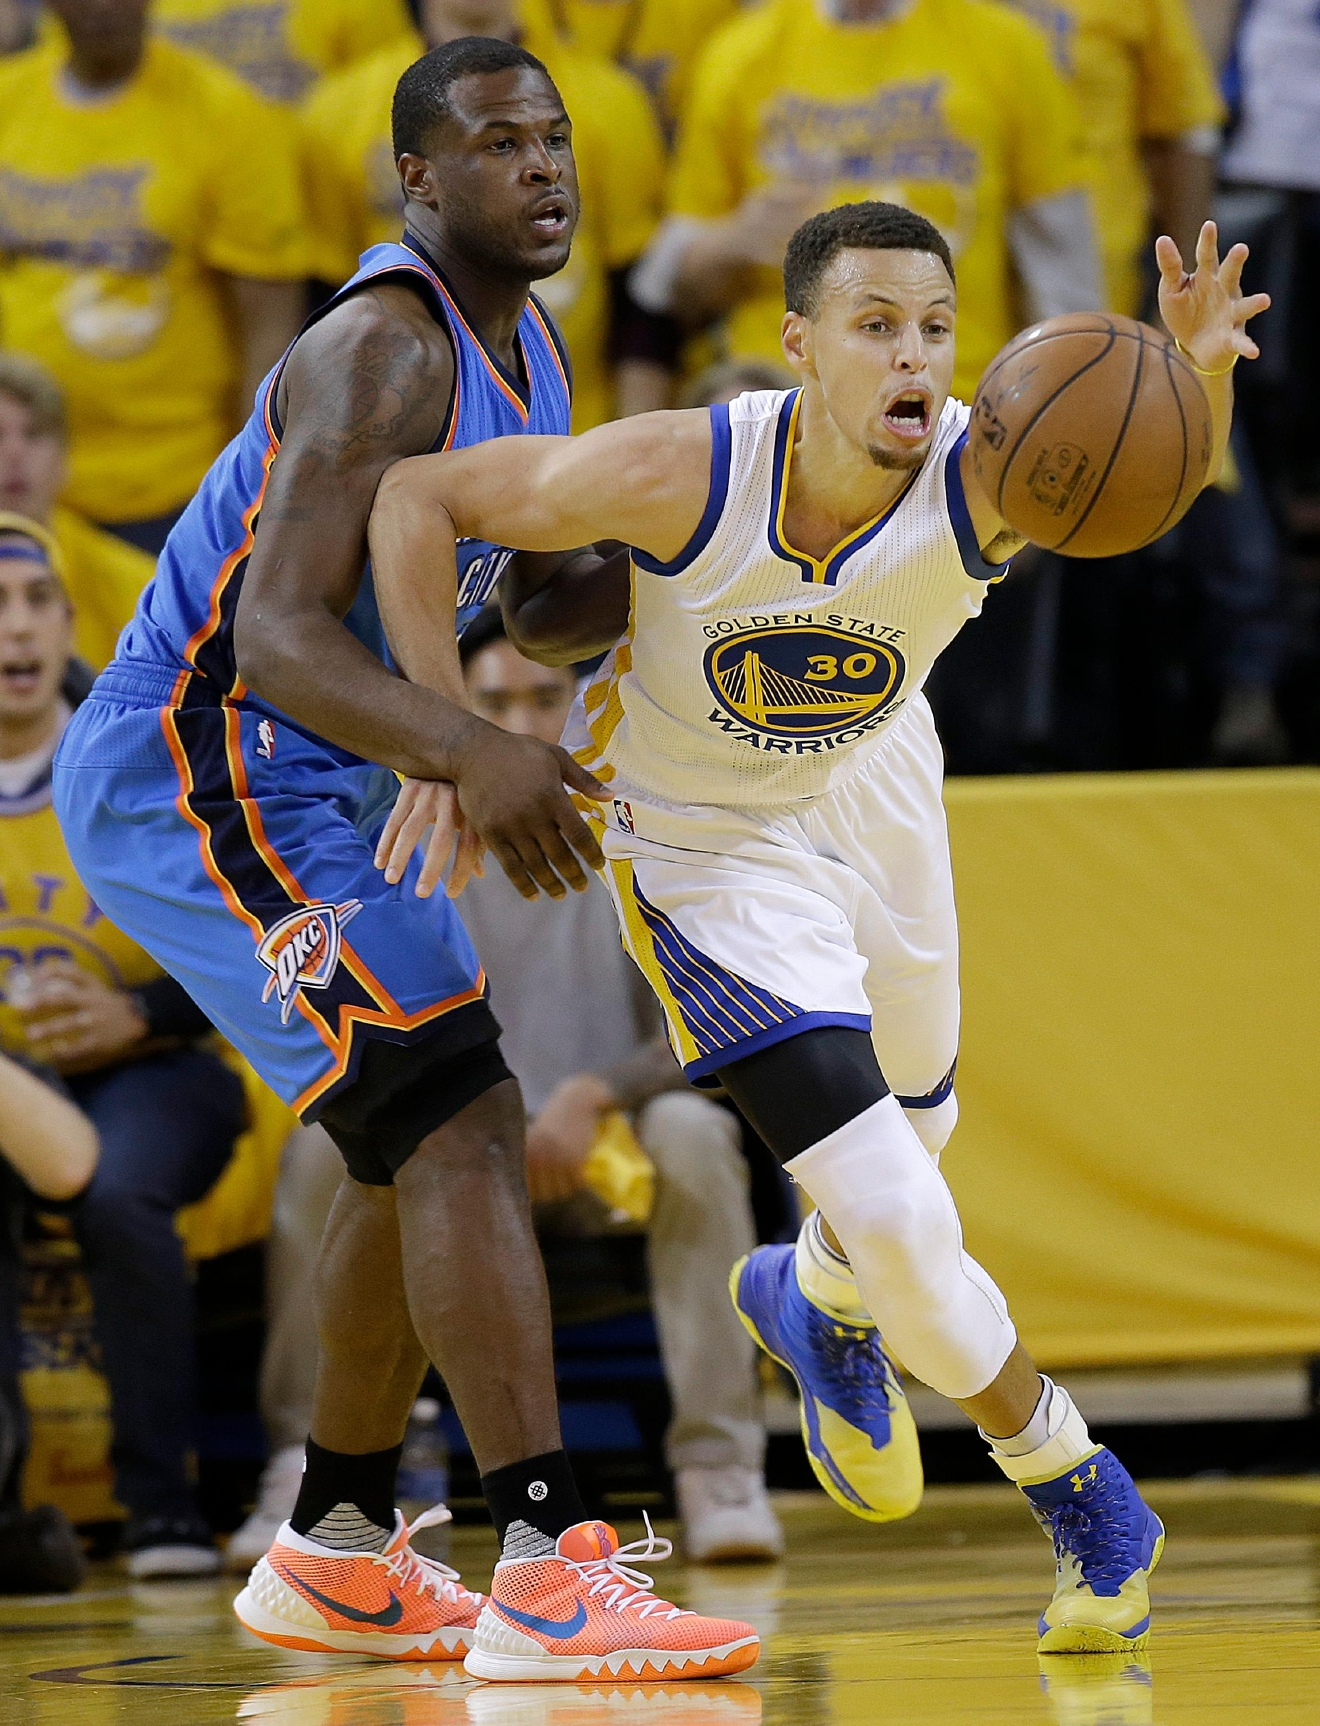 Golden State Warriors guard Stephen Curry (30) reaches for the ball in front of Oklahoma City Thunder guard Dion Waiters during the first half of Game 2 of the NBA basketball Western Conference finals in Oakland, Calif., Wednesday, May 18, 2016. (AP Photo/Marcio Jose Sanchez)